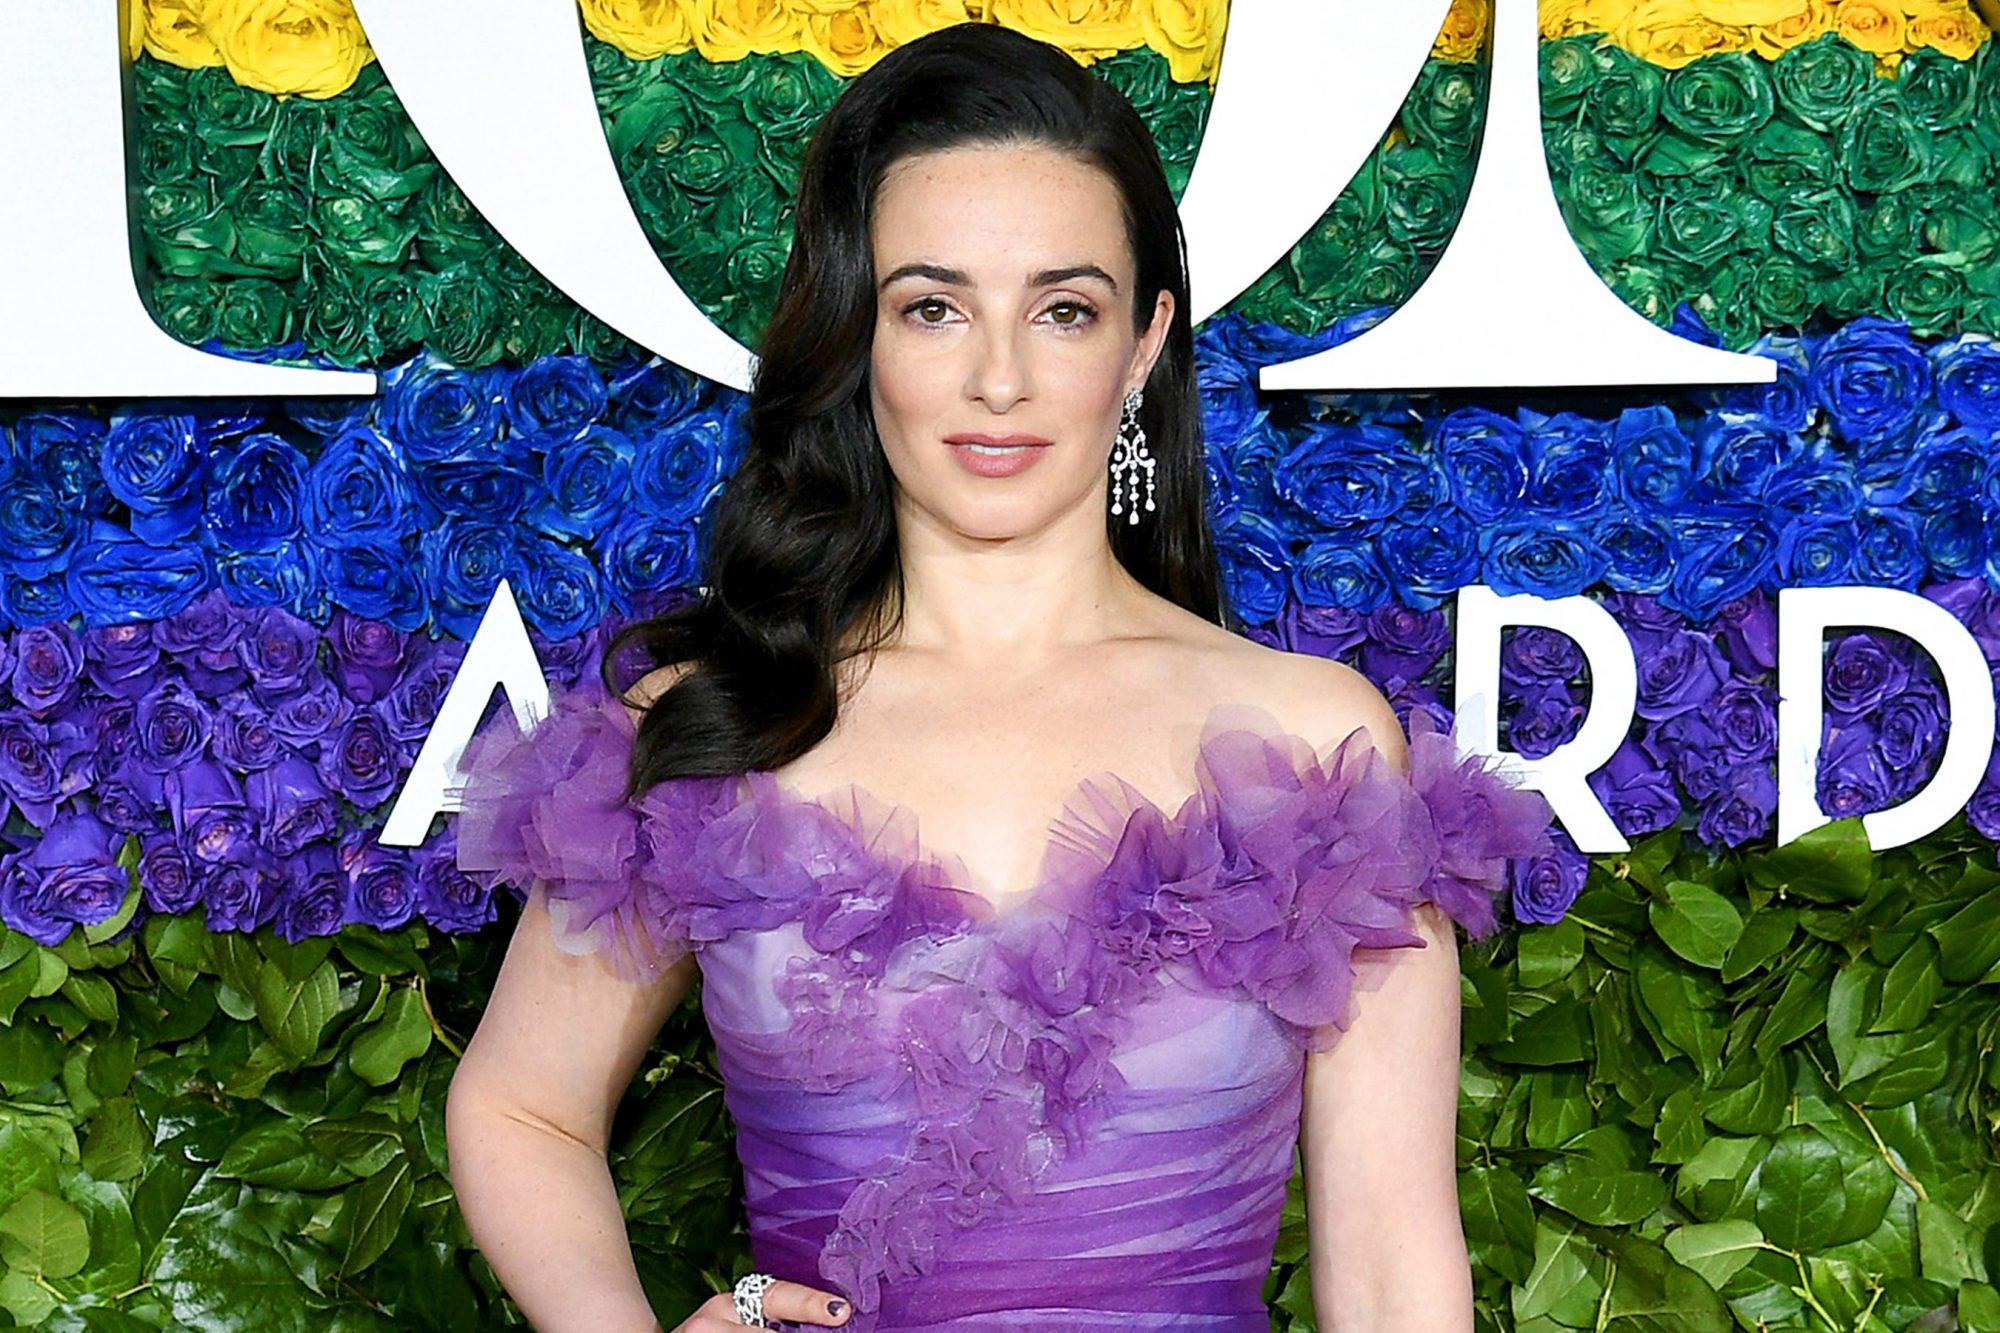 NEW YORK, NEW YORK - JUNE 09: Laura Donnelly attends the 73rd Annual Tony Awards at Radio City Music Hall on June 09, 2019 in New York City. (Photo by Dimitrios Kambouris/Getty Images for Tony Awards Productions)